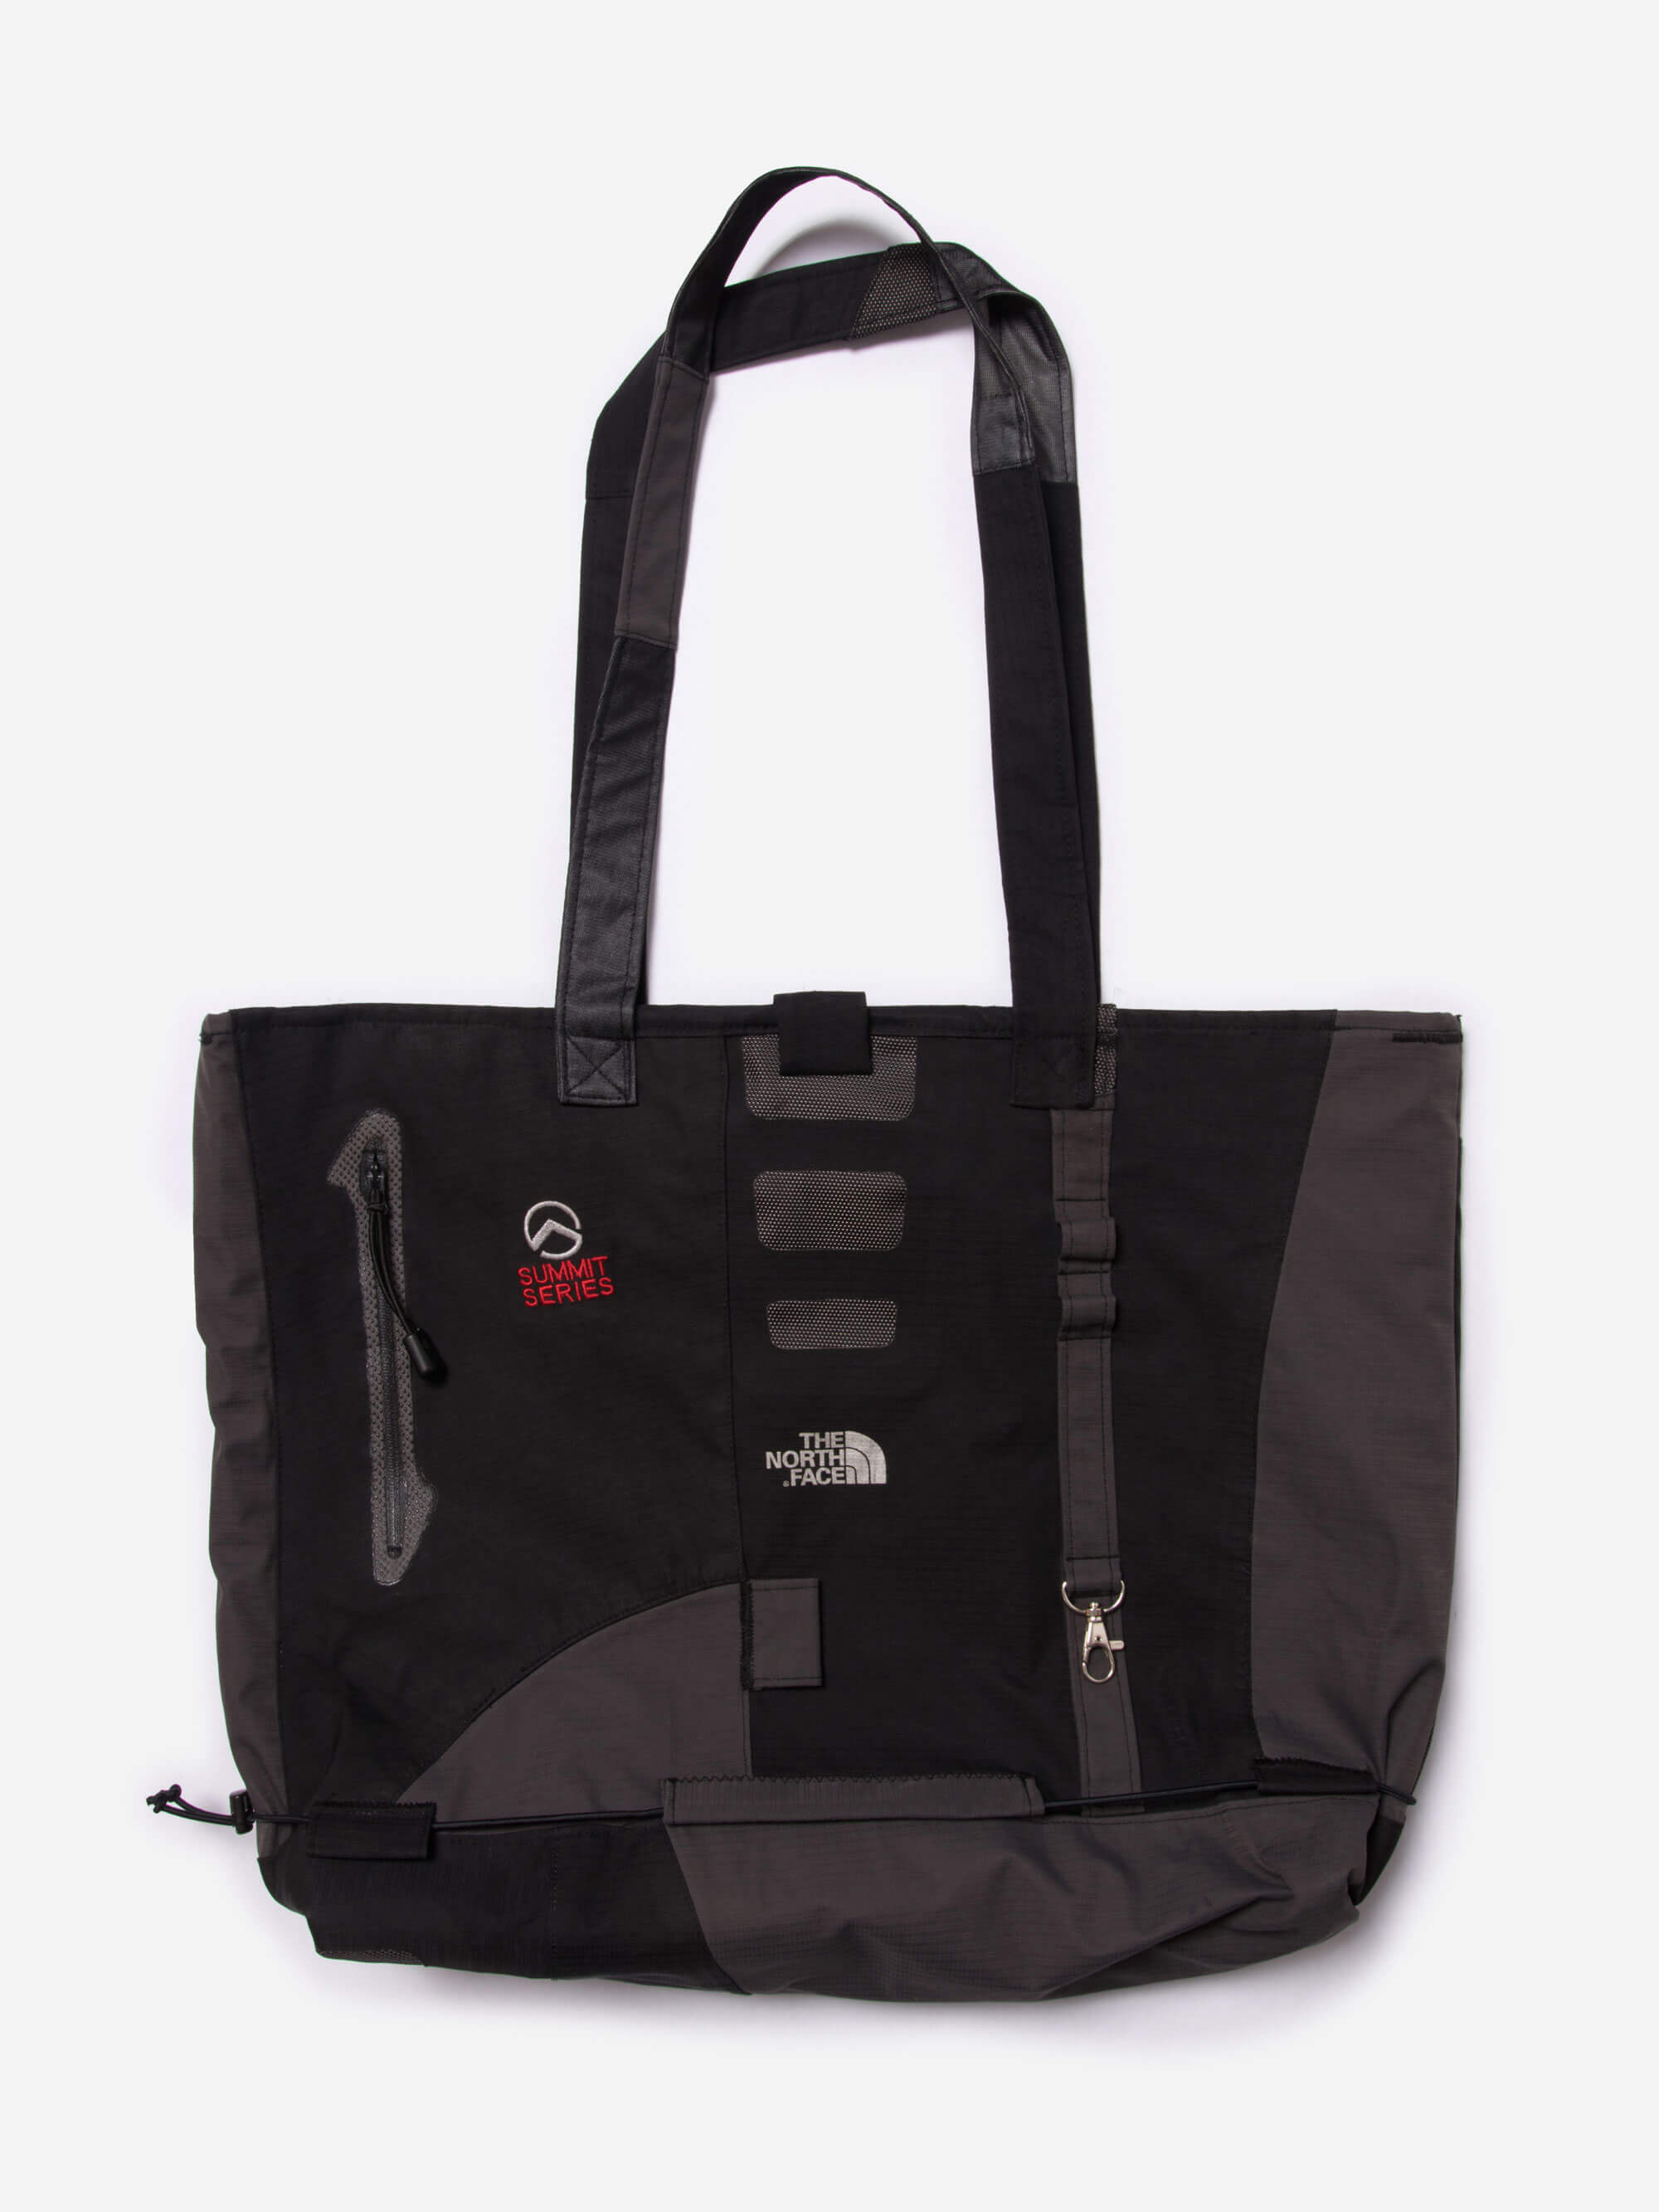 Greater-Goods-Fashion-Upcycling-North-Face-Bag-Black